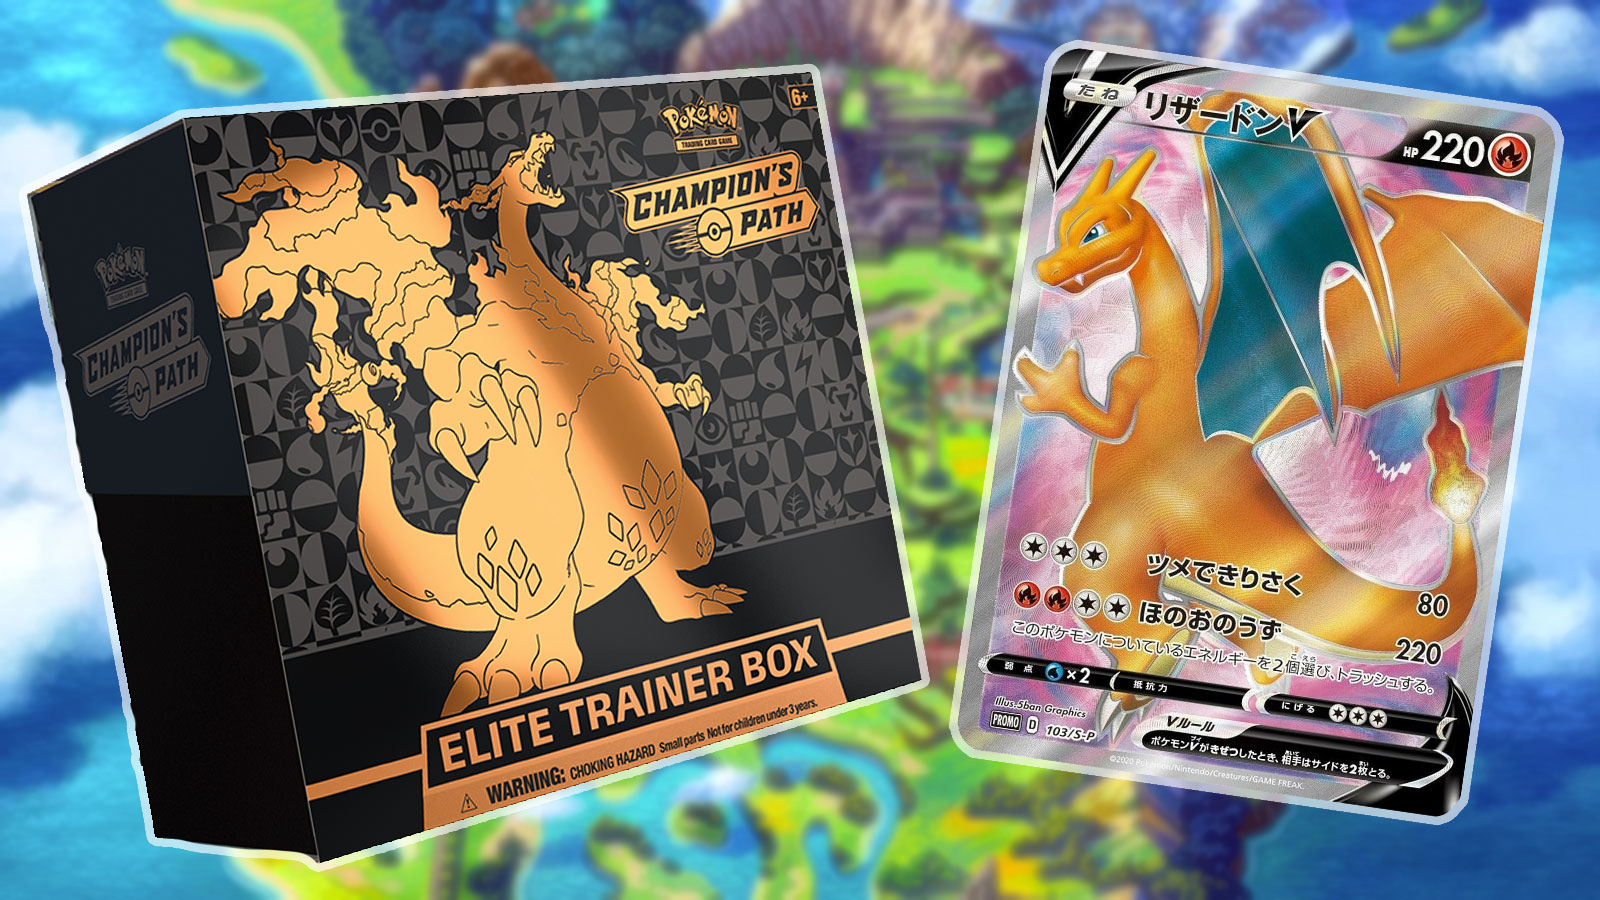 pokemon champion's path elite trainer box with charizard v card